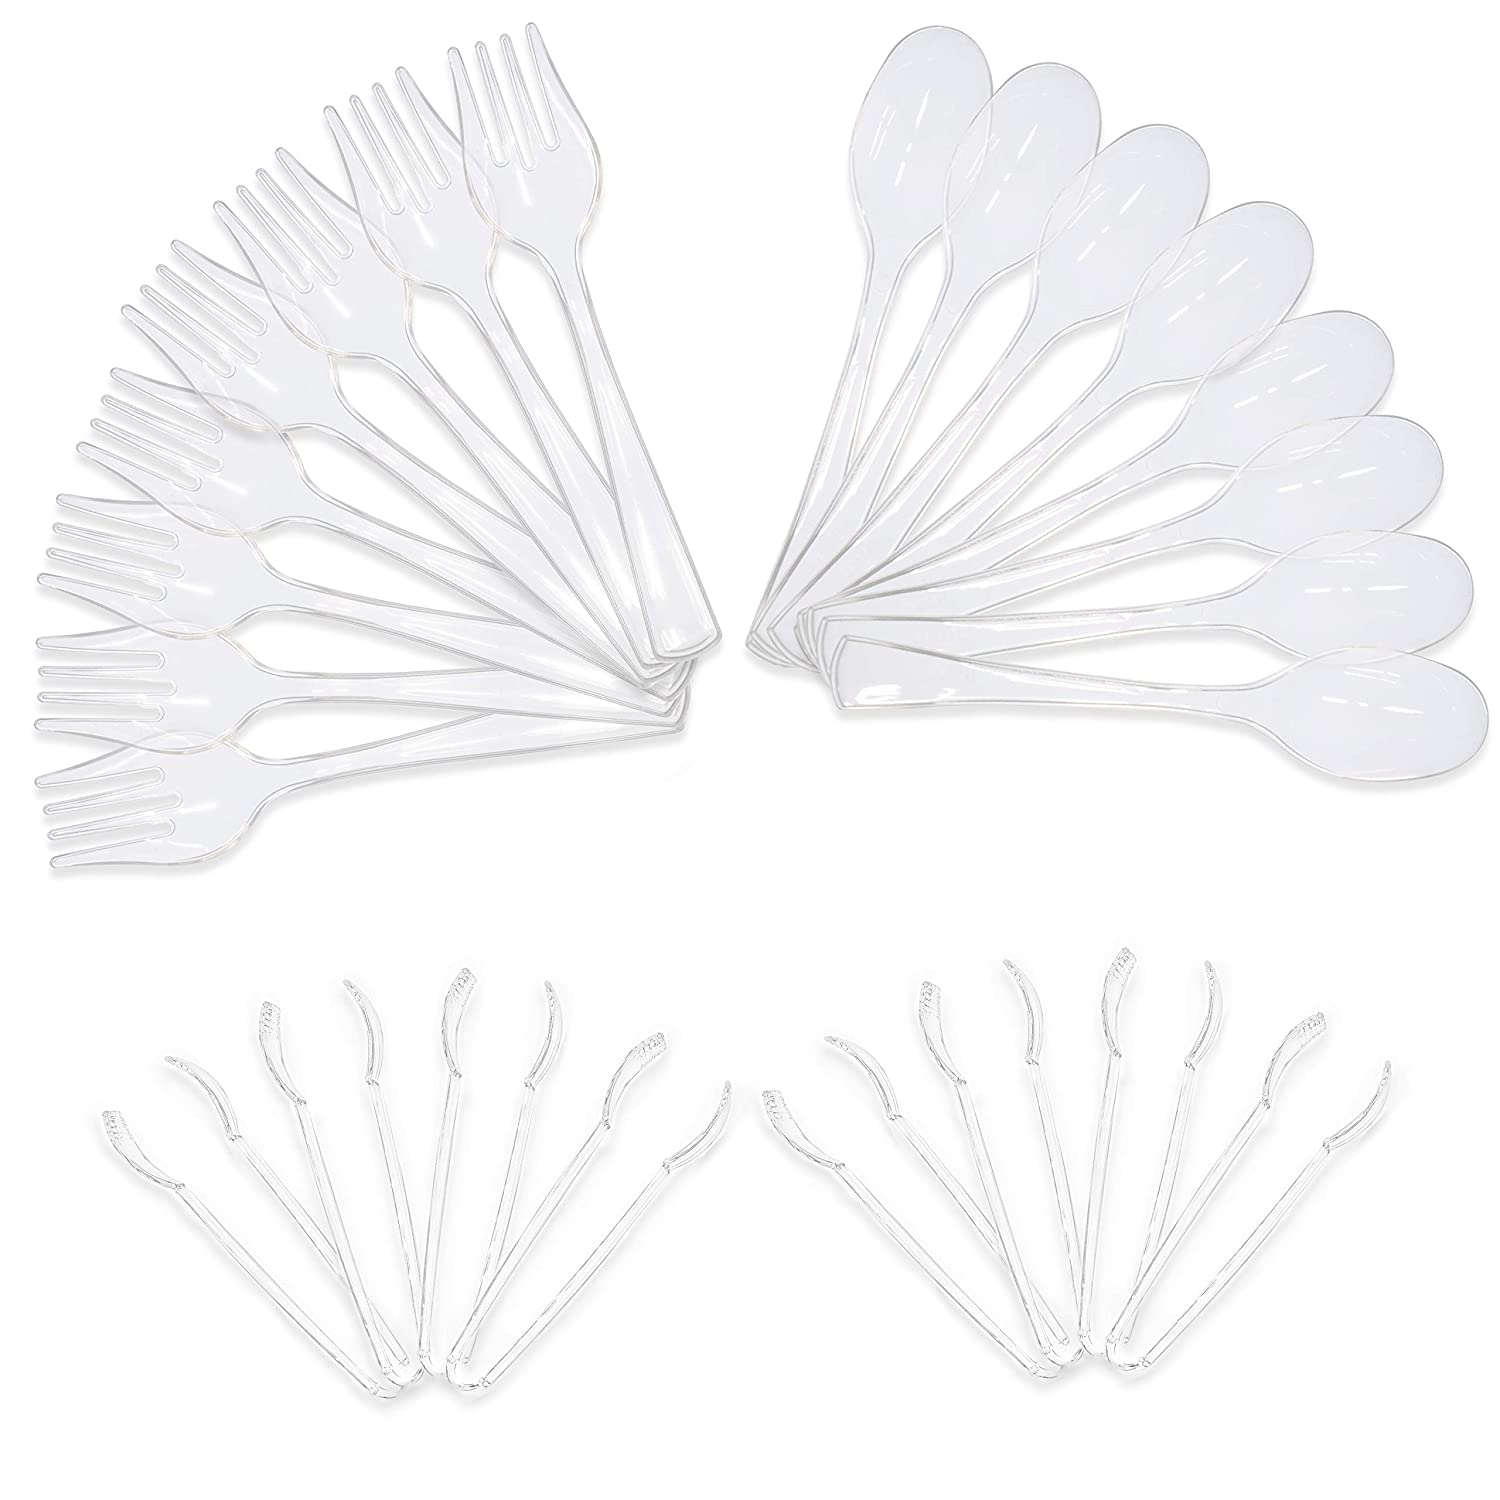 Upper Midland Products Clear Disposable Plastic Serving Utensils - Eight 10 Inch Forks and Spoons and Eight 6 1/2 Inch Serving Tongs